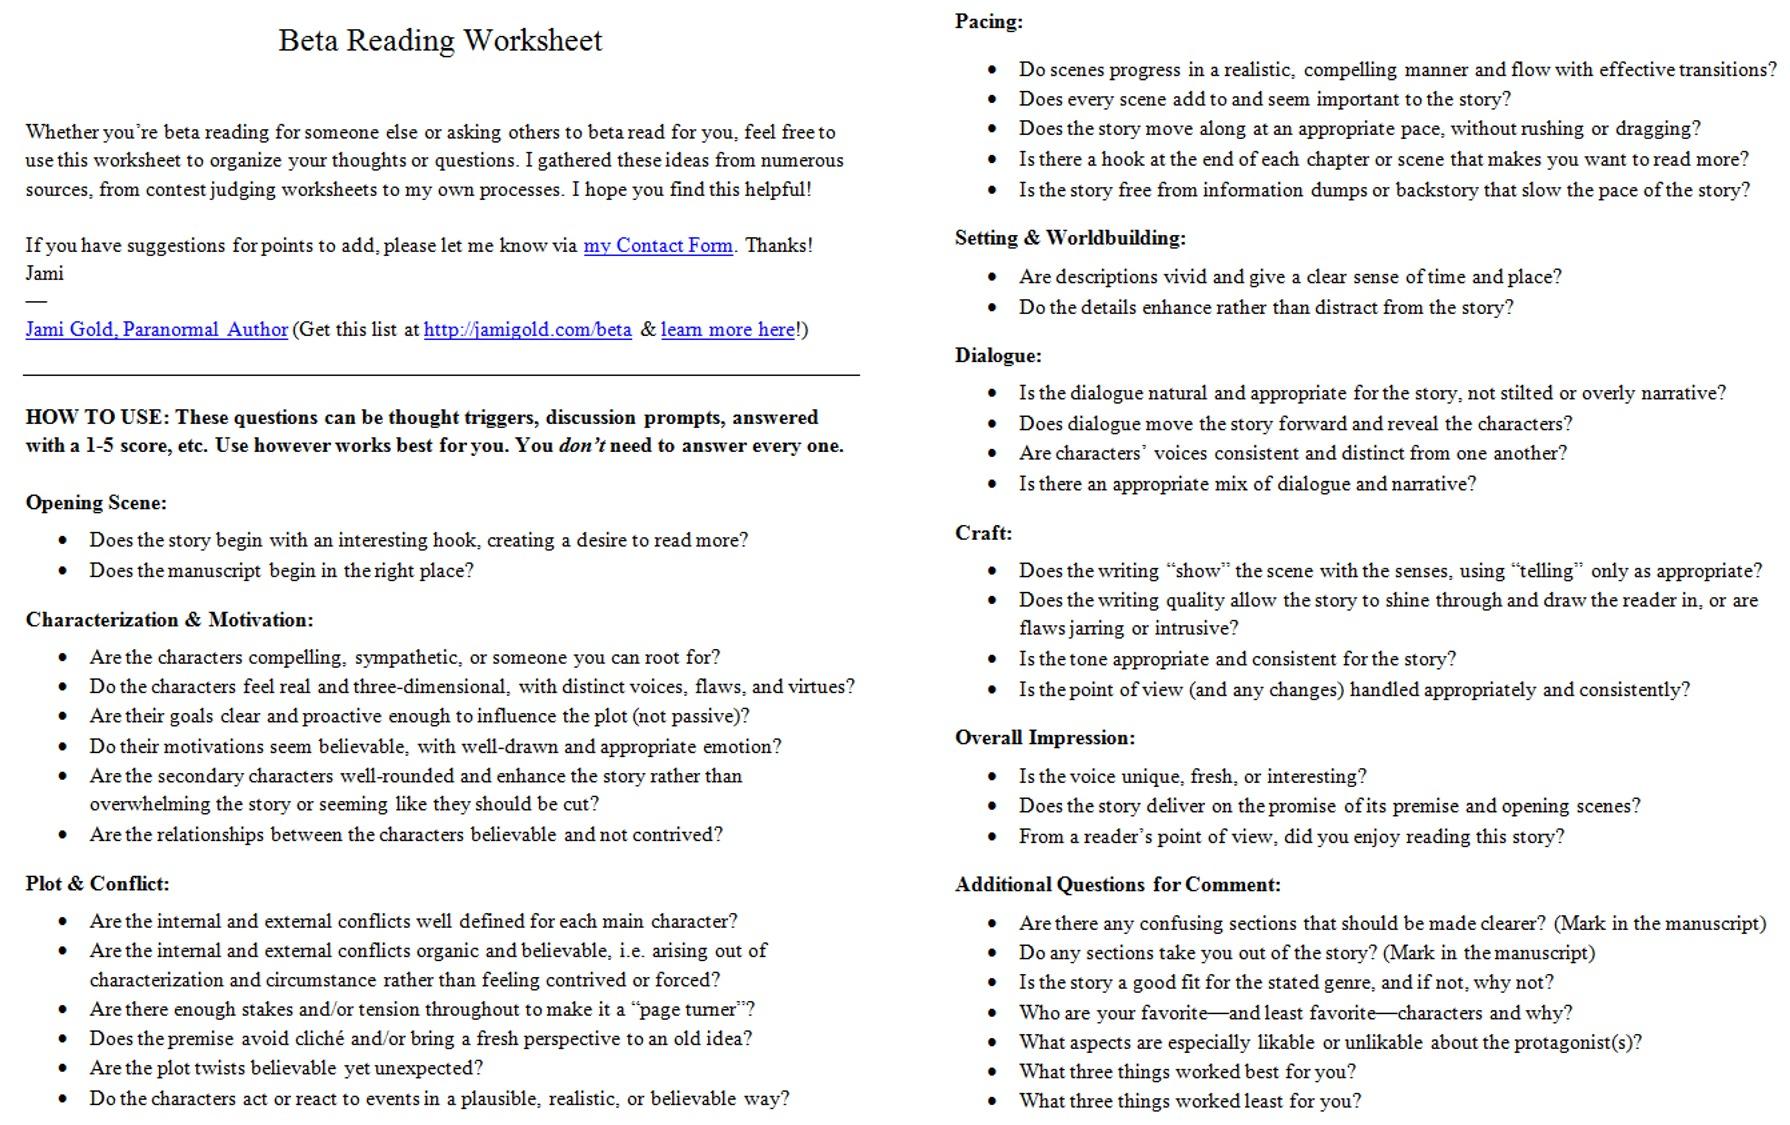 Weirdmailus  Inspiring Worksheets For Writers  Jami Gold Paranormal Author With Exquisite Screen Shot Of The Twopage Beta Reading Worksheet With Archaic Direction Worksheet Also Decimal By Decimal Division Worksheets In Addition Free Printable Worksheets For Math And Hidden Shapes Worksheet As Well As Division Fact Practice Worksheets Additionally English Fun Worksheets From Jamigoldcom With Weirdmailus  Exquisite Worksheets For Writers  Jami Gold Paranormal Author With Archaic Screen Shot Of The Twopage Beta Reading Worksheet And Inspiring Direction Worksheet Also Decimal By Decimal Division Worksheets In Addition Free Printable Worksheets For Math From Jamigoldcom